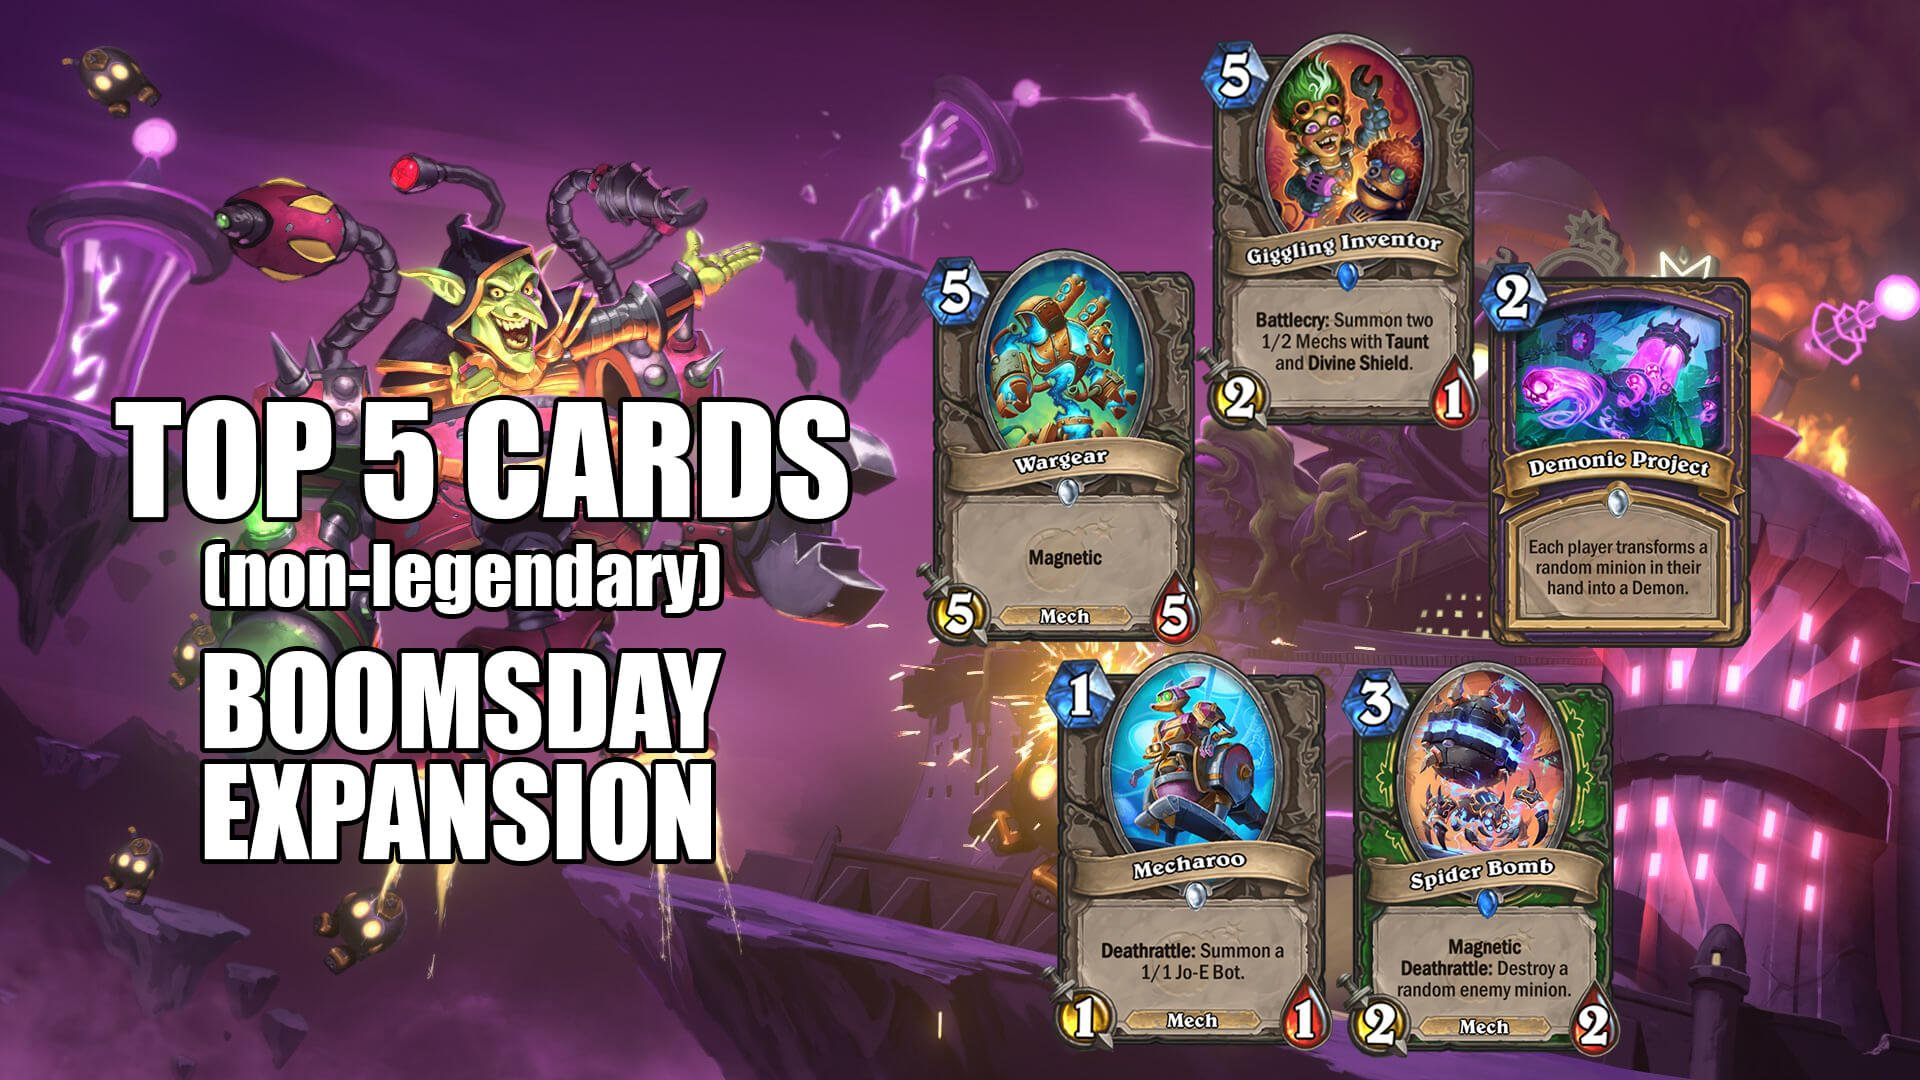 Top 5 Non Legendary Cards - Hearthstone Boomsday